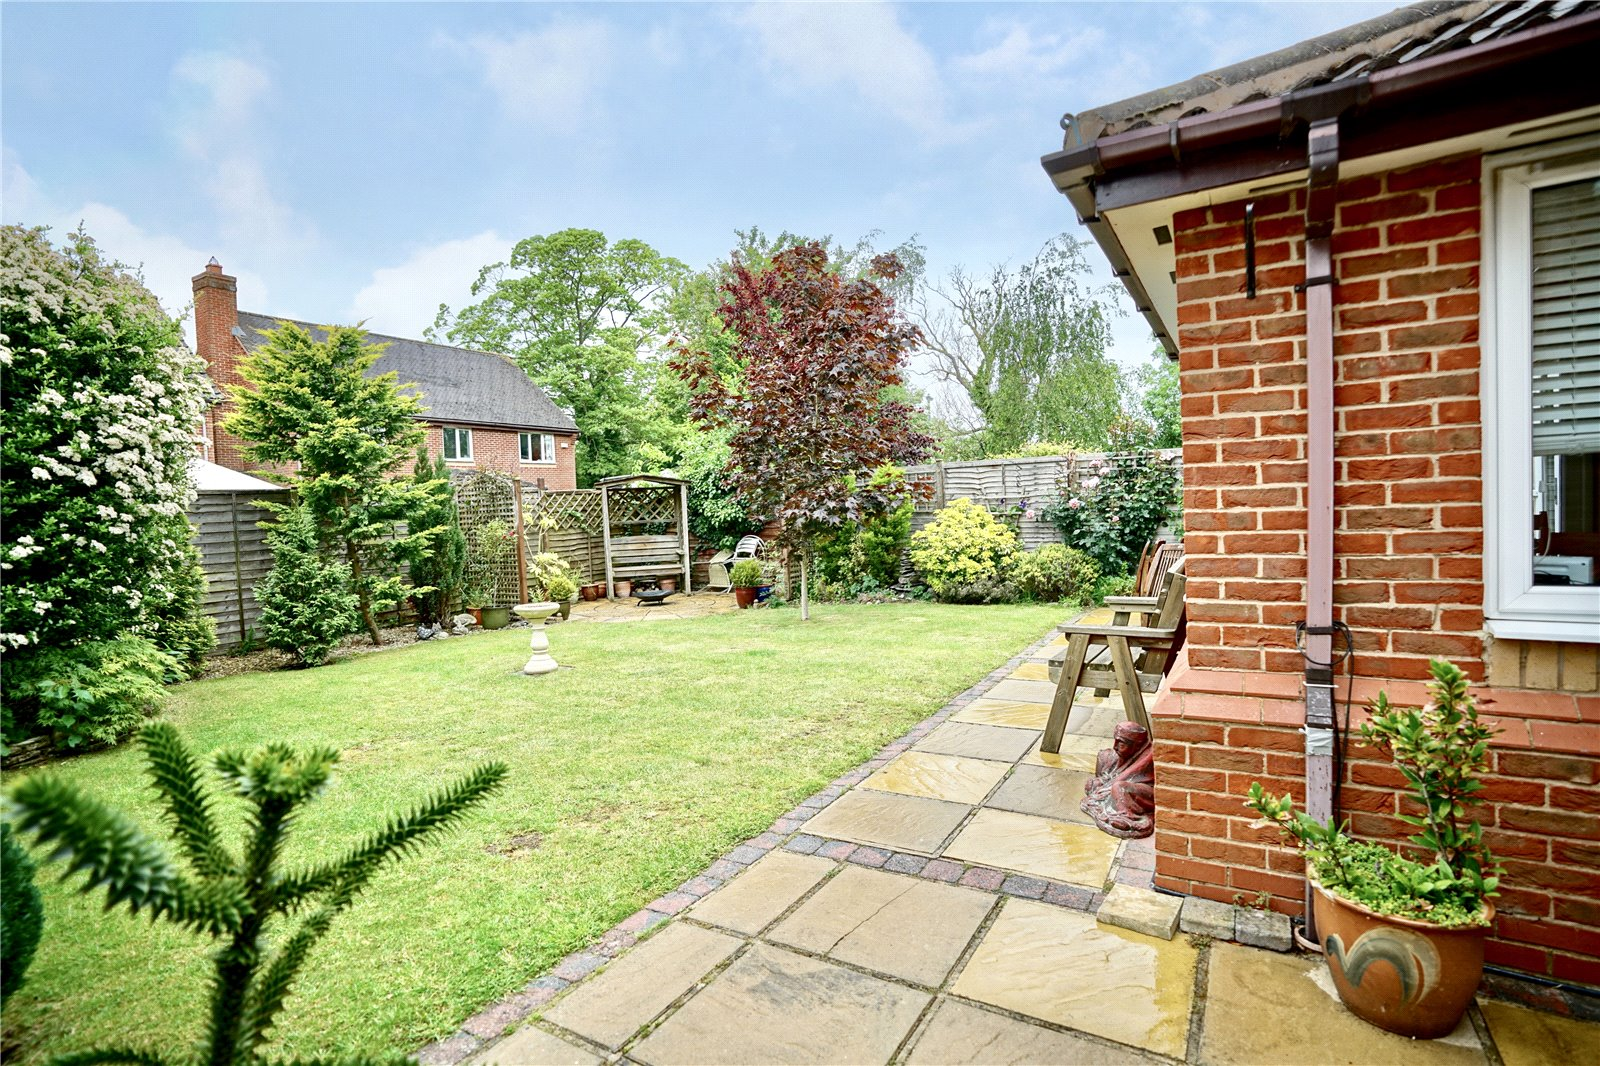 4 bed house for sale in Great Gransden 9